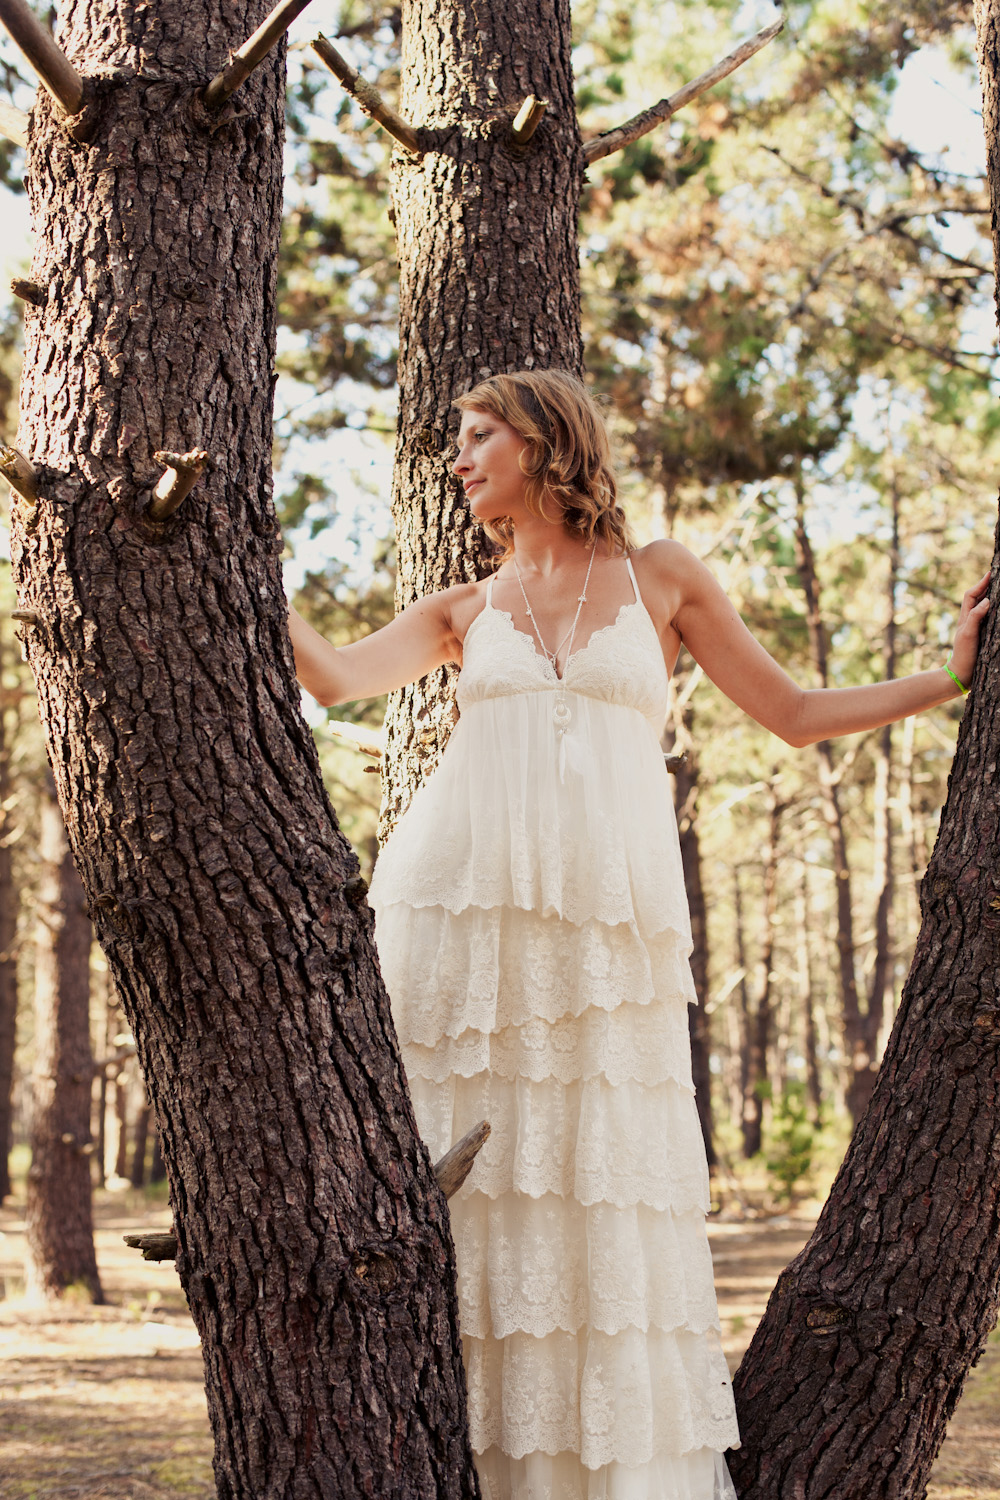 Mariage boh me un joli shooting inspiration part 2 andralys - Robe hippie chic mariage ...